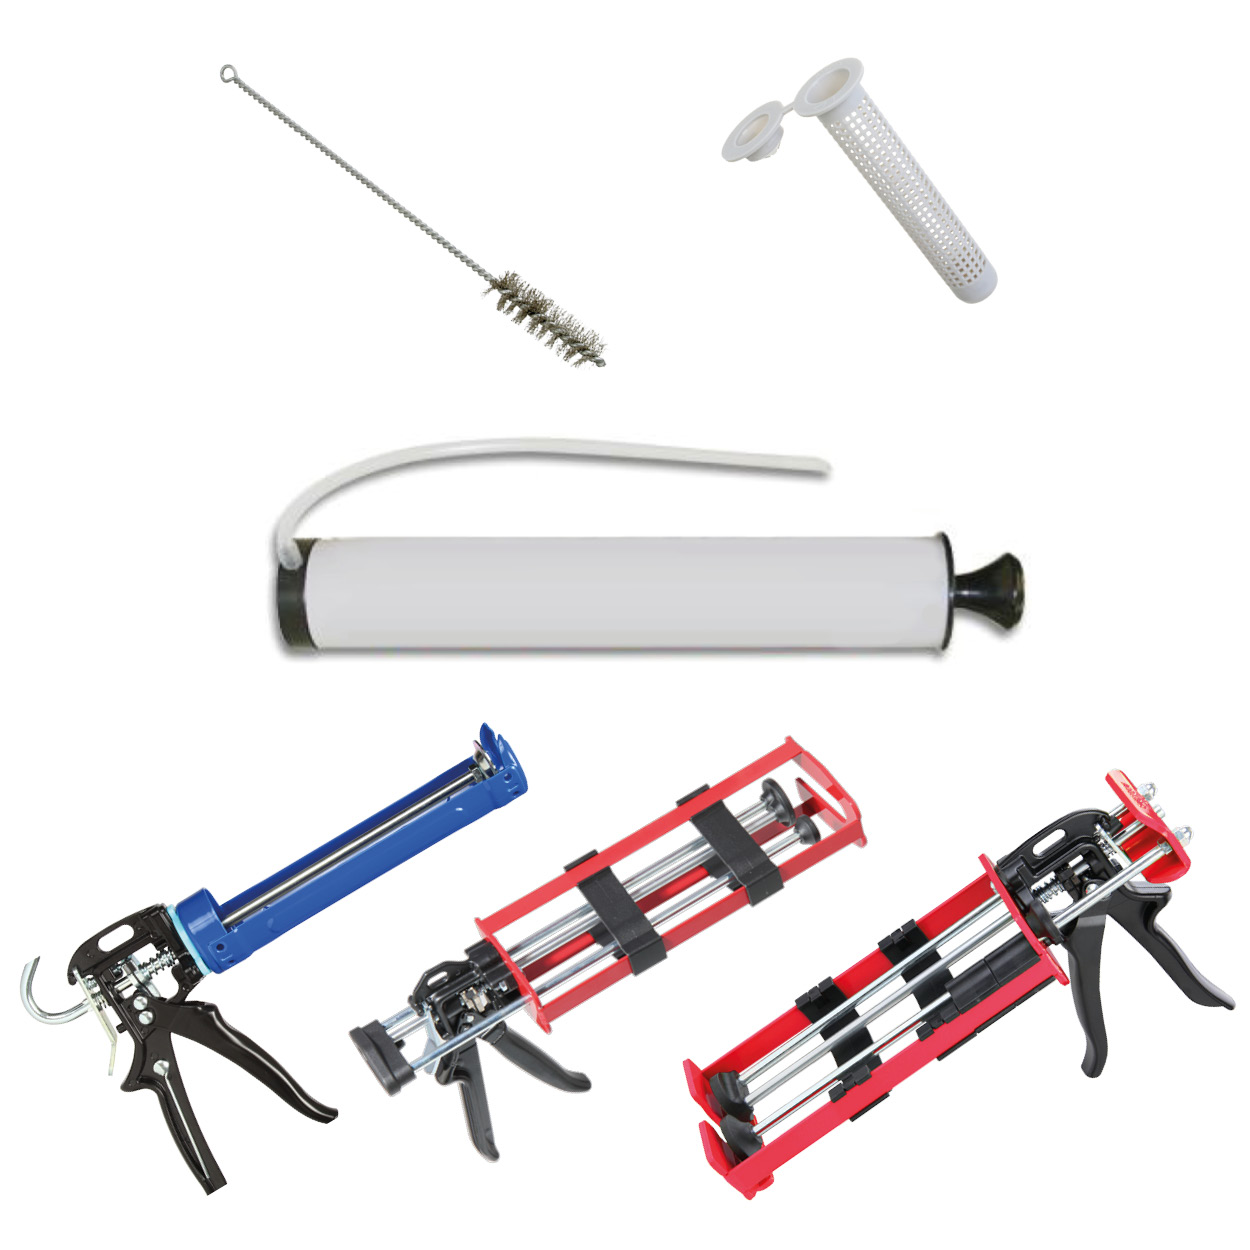 Accessories for Chemical Anchoring